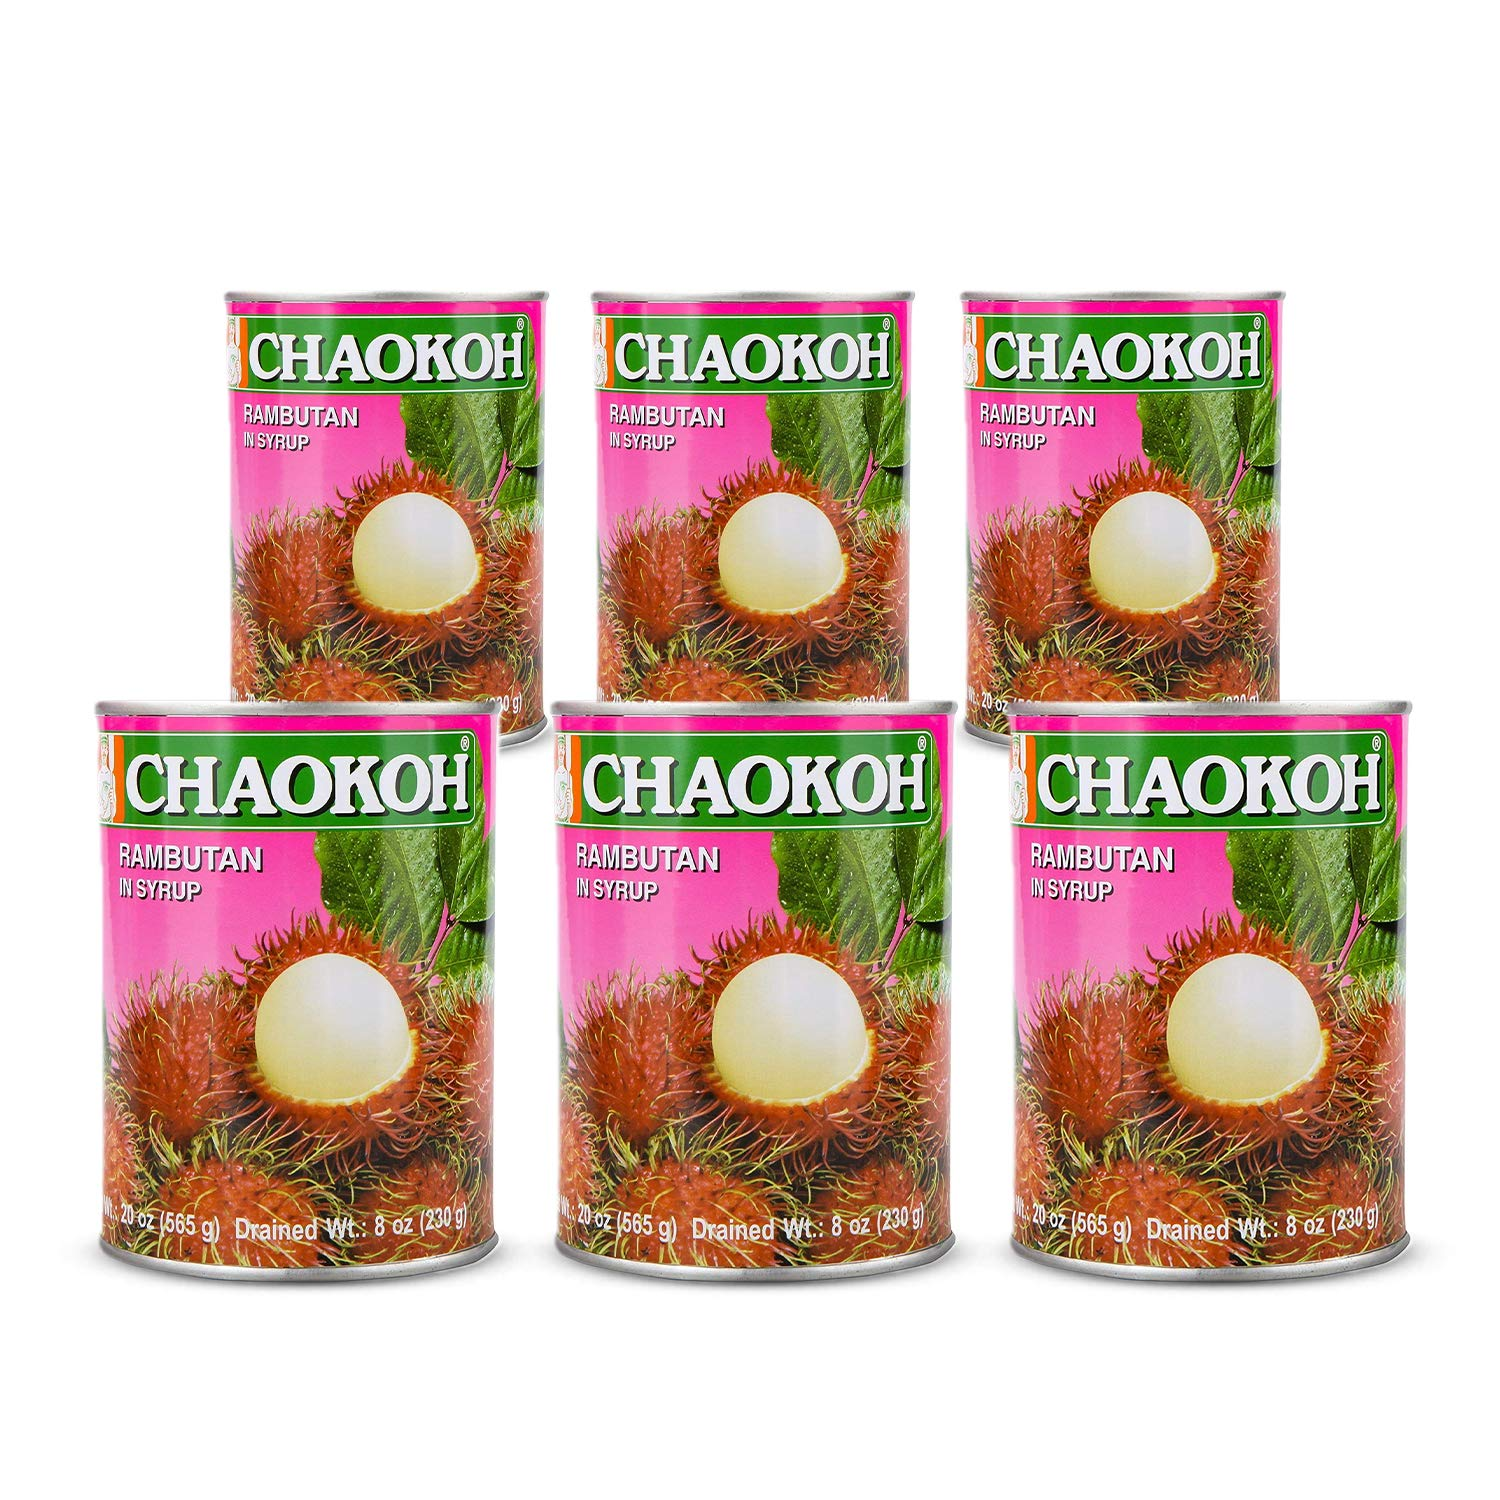 Chaokoh Rambutan in Syrup 6 Total quality assurance of Pack Sales results No. 1 120oz